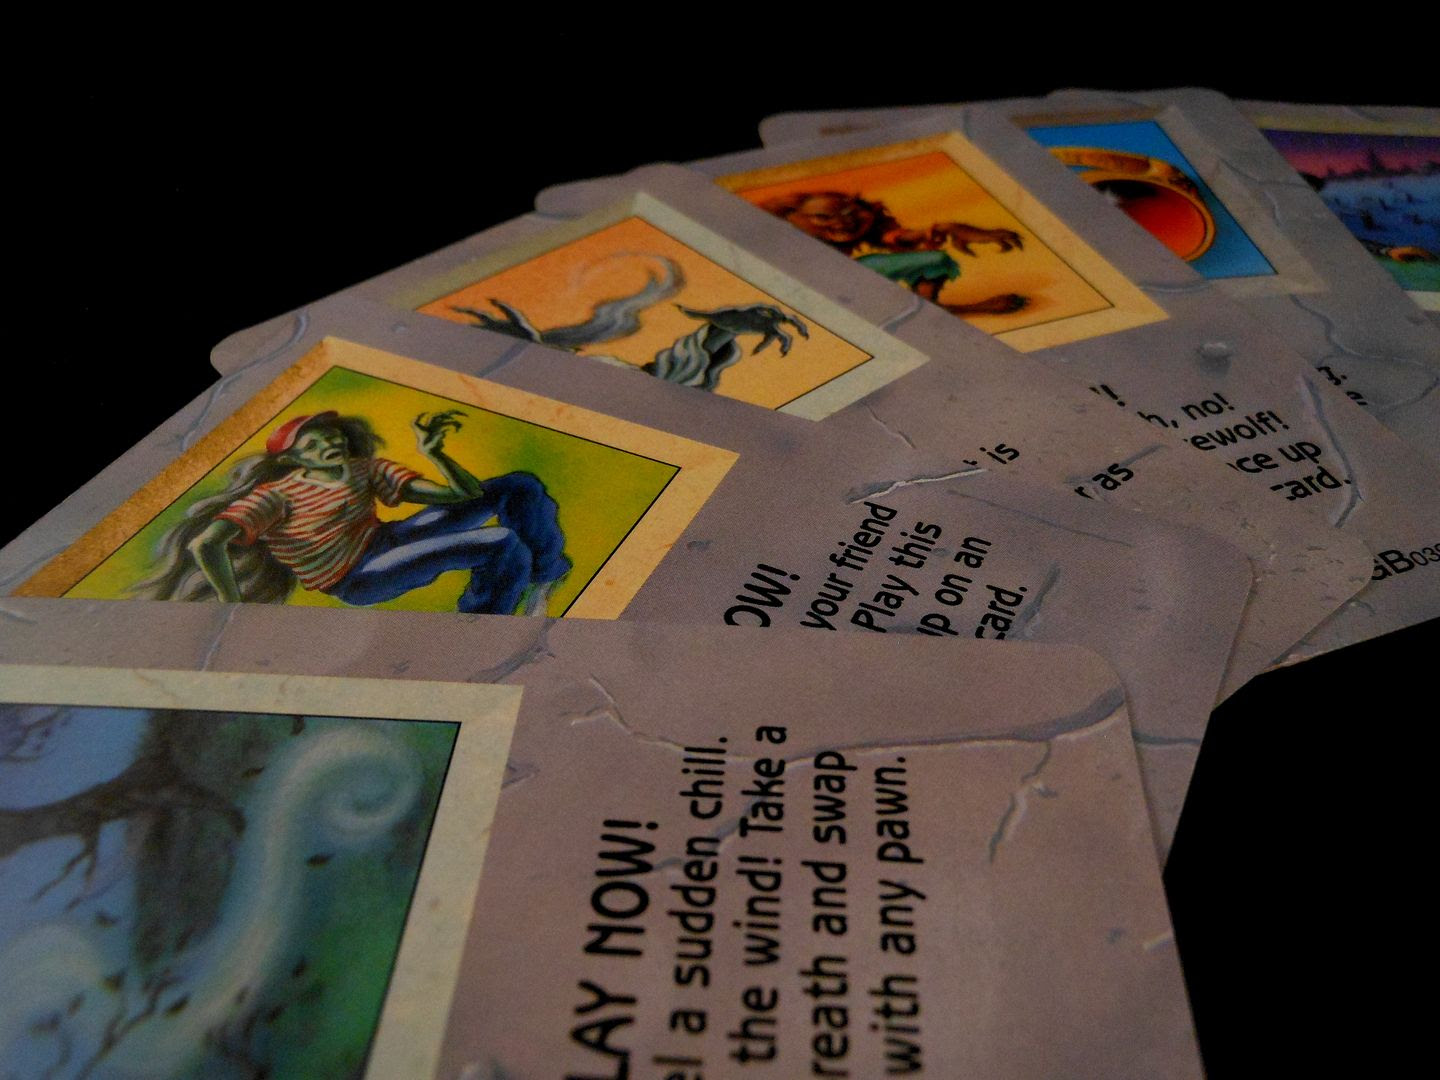 An attractive arrangement of cards from the Goosebumps Terror in the Graveyard board game.